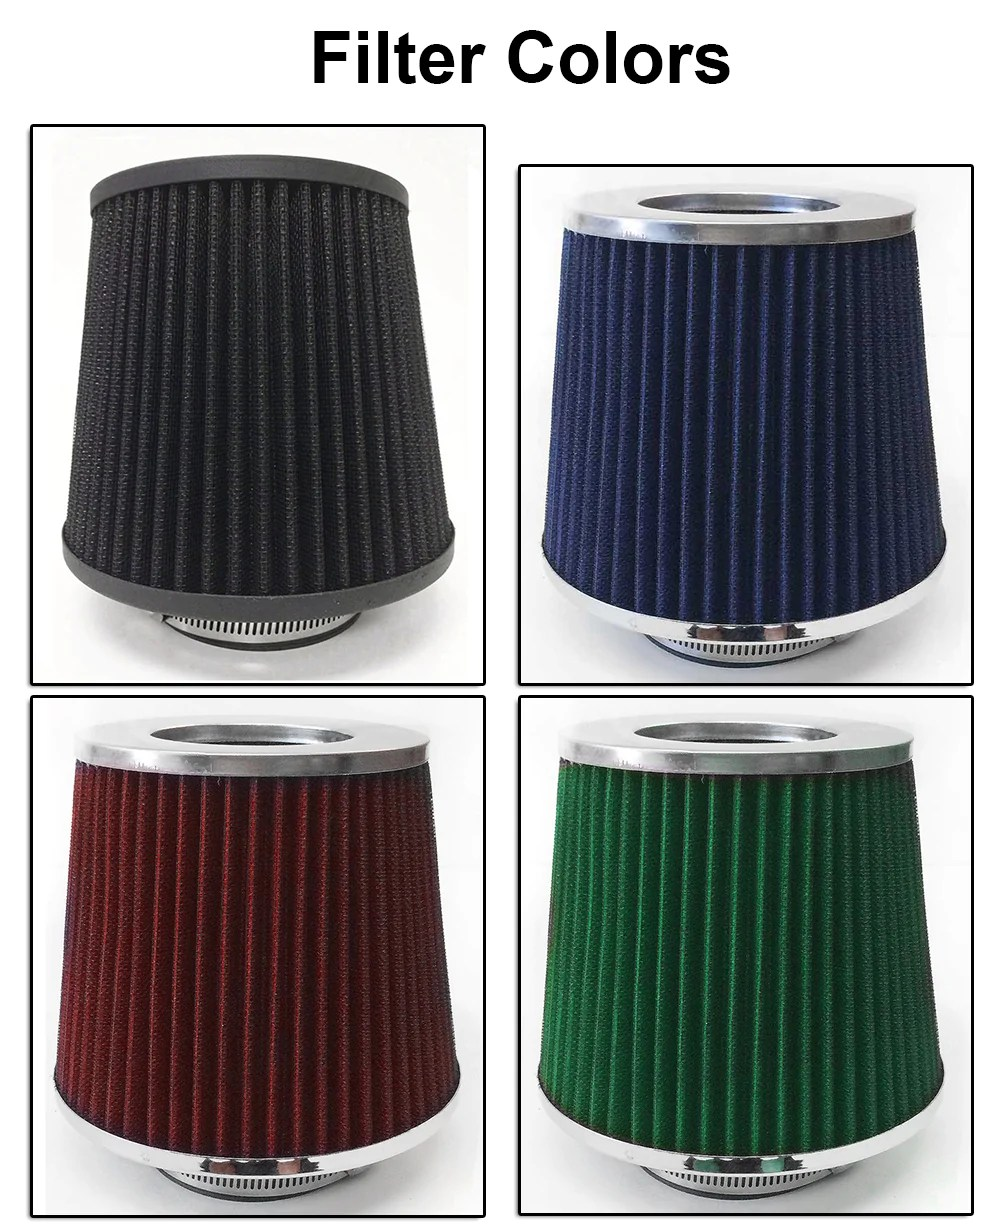 2018 F150 Colors : colors, Intake, Filter, System, F-150, 2017-2018, Racing